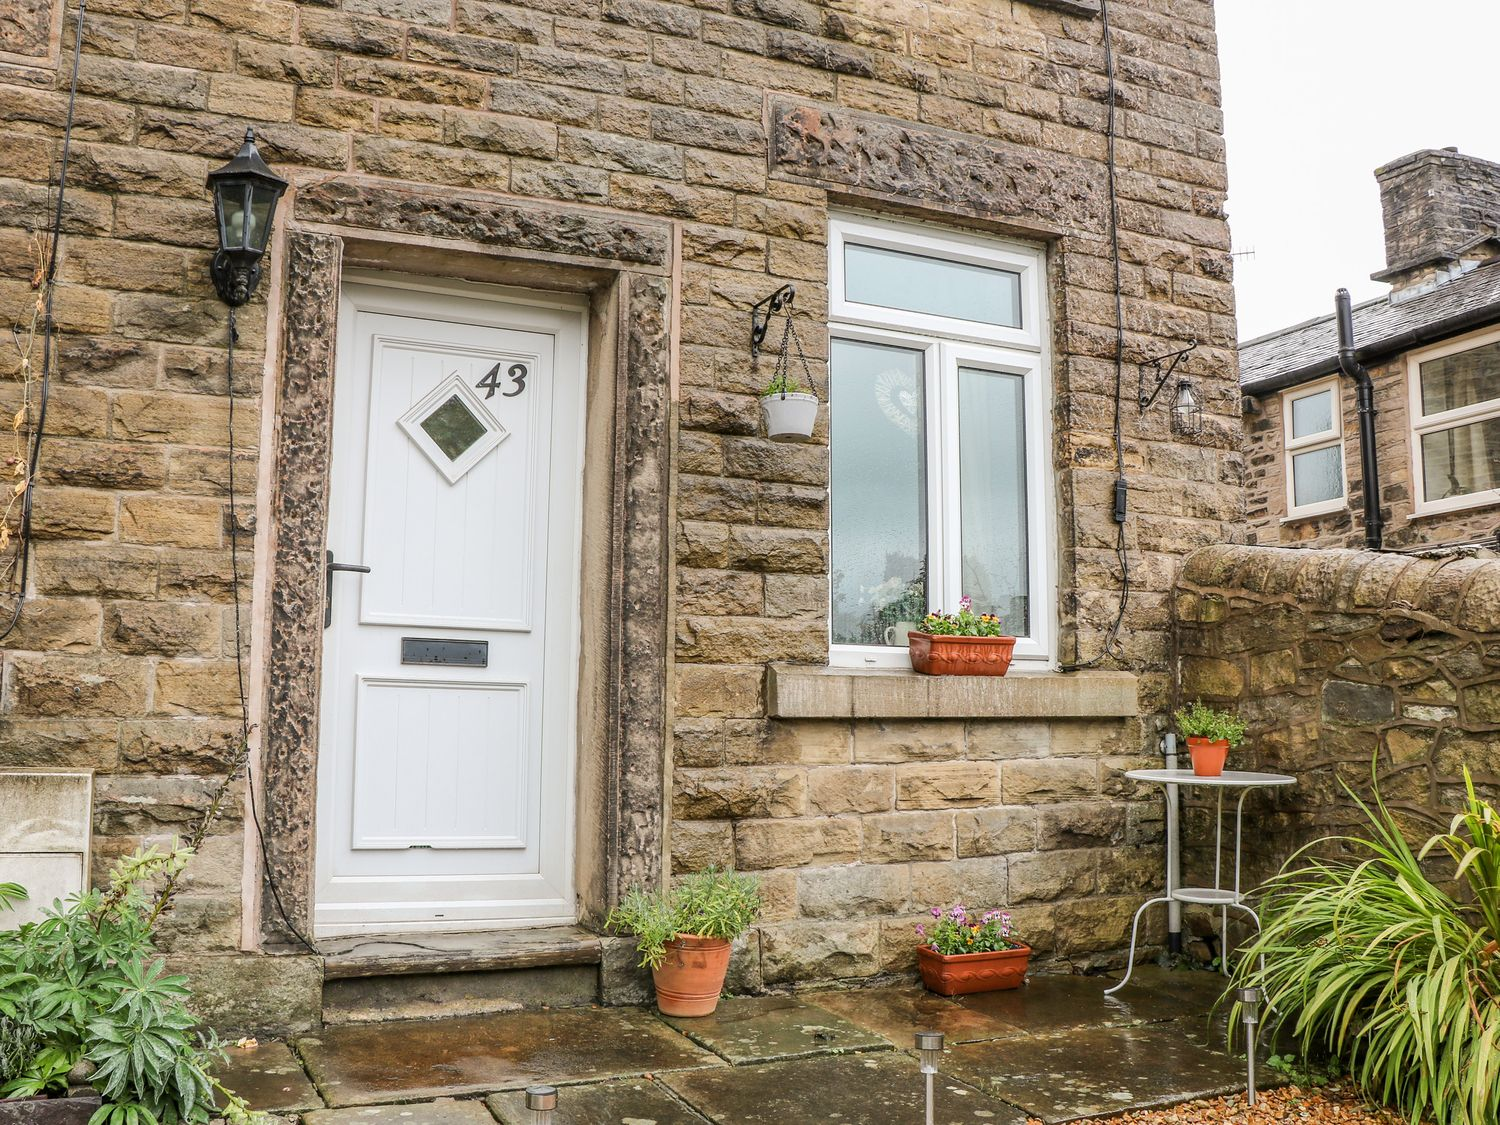 43 Macclesfield Road - Peak District - 1005266 - photo 1